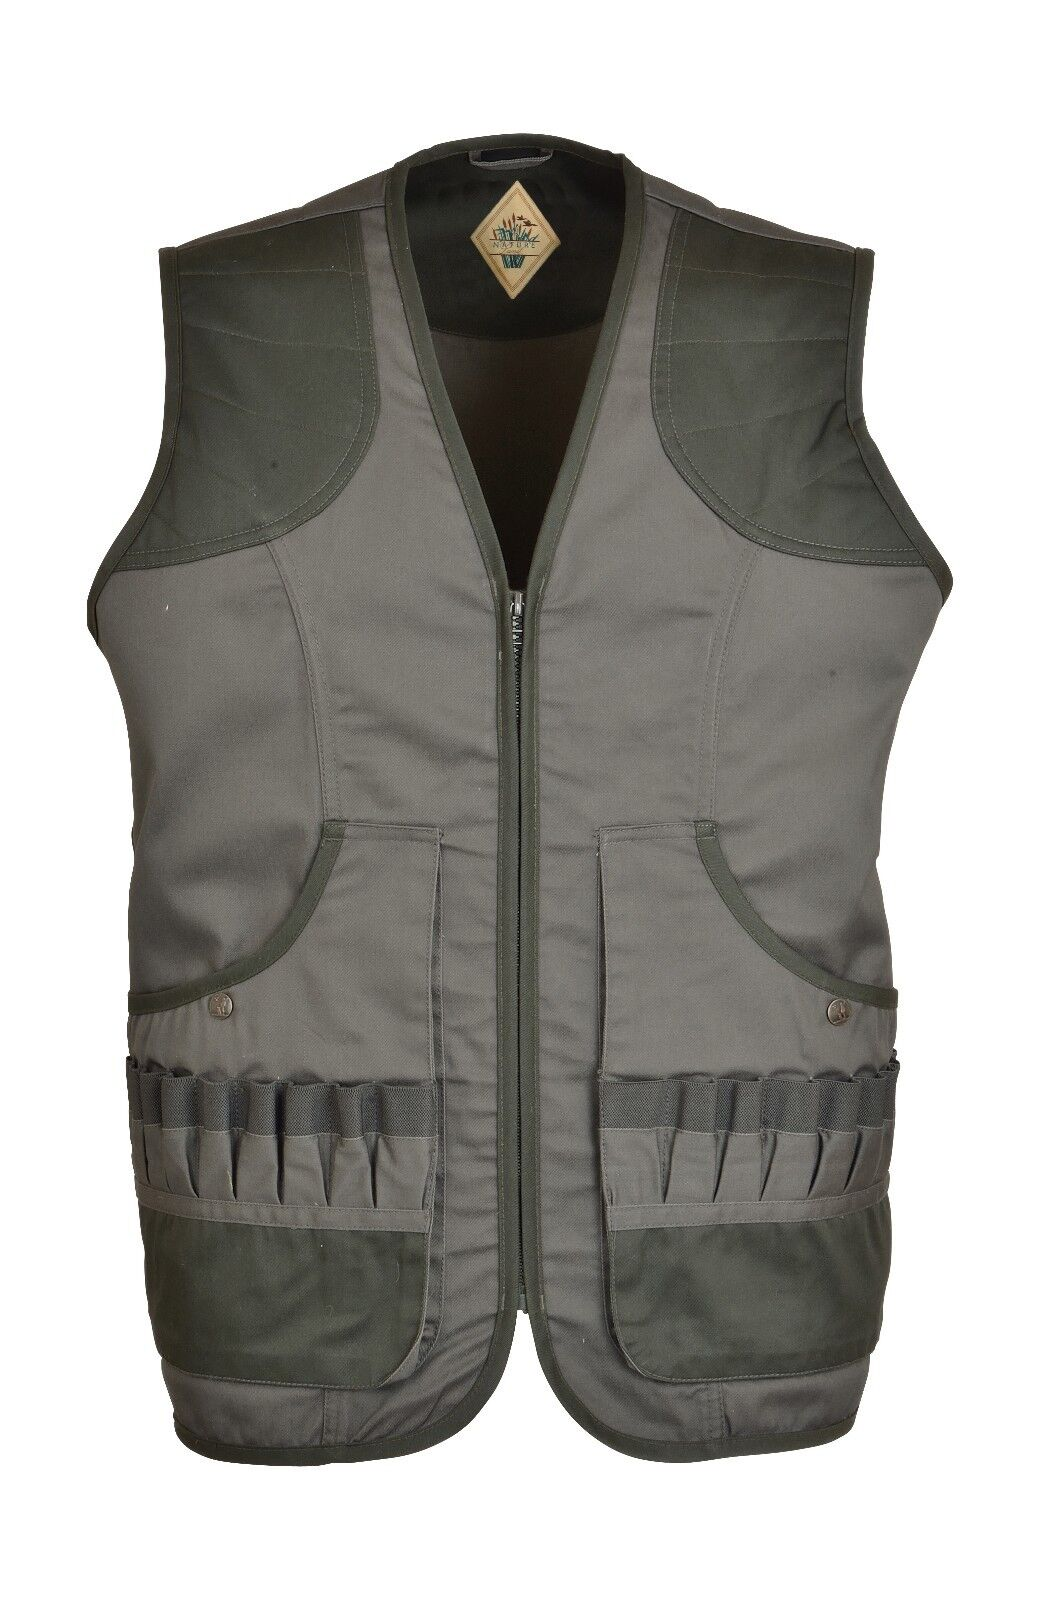 1206 Percussion Shooting Waistcoat Gilet Vest Hunting Reinforced Shoulder New